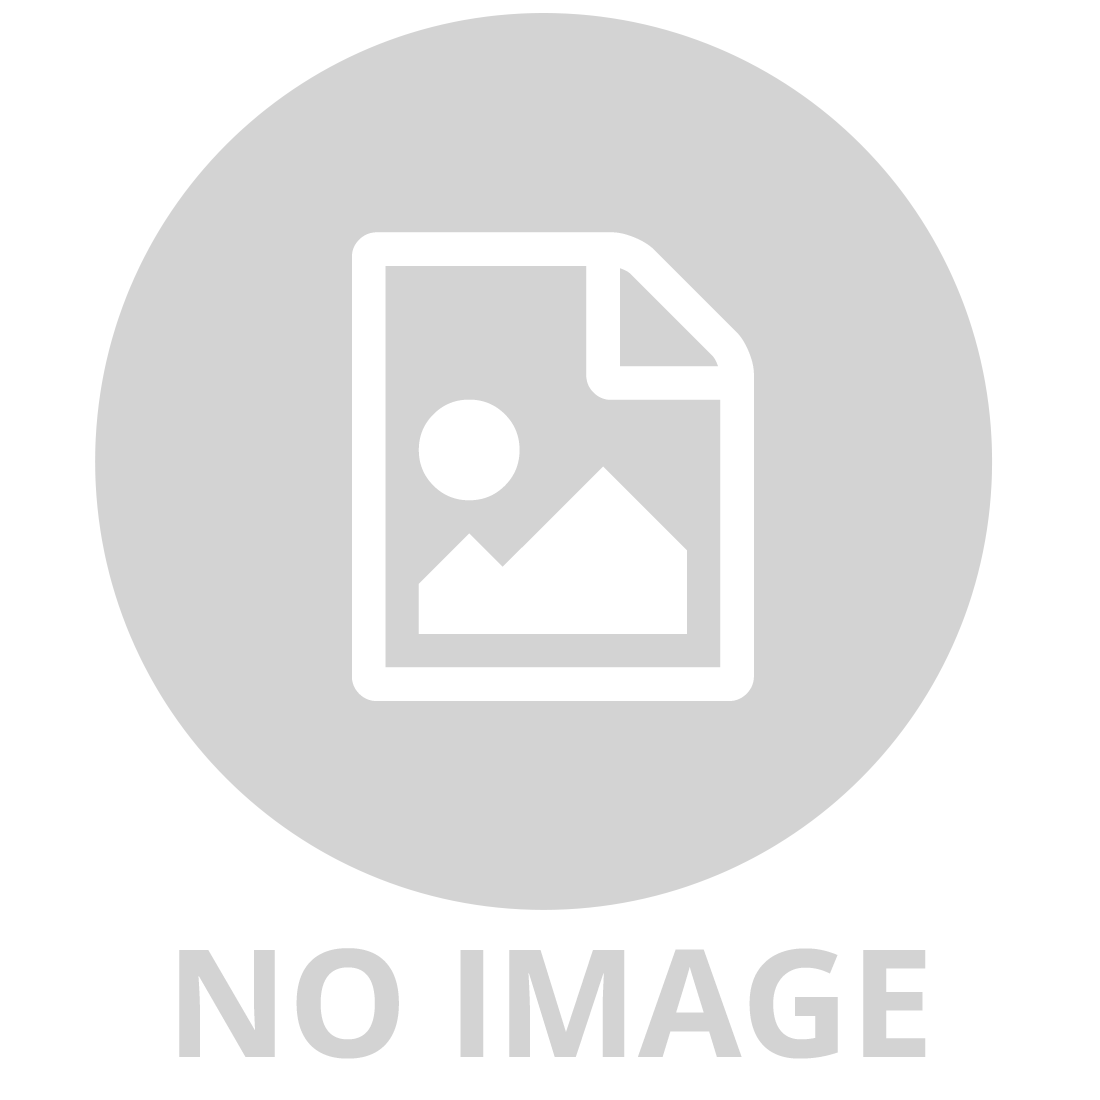 WAHU POOL PARTY SKIM N SCORE